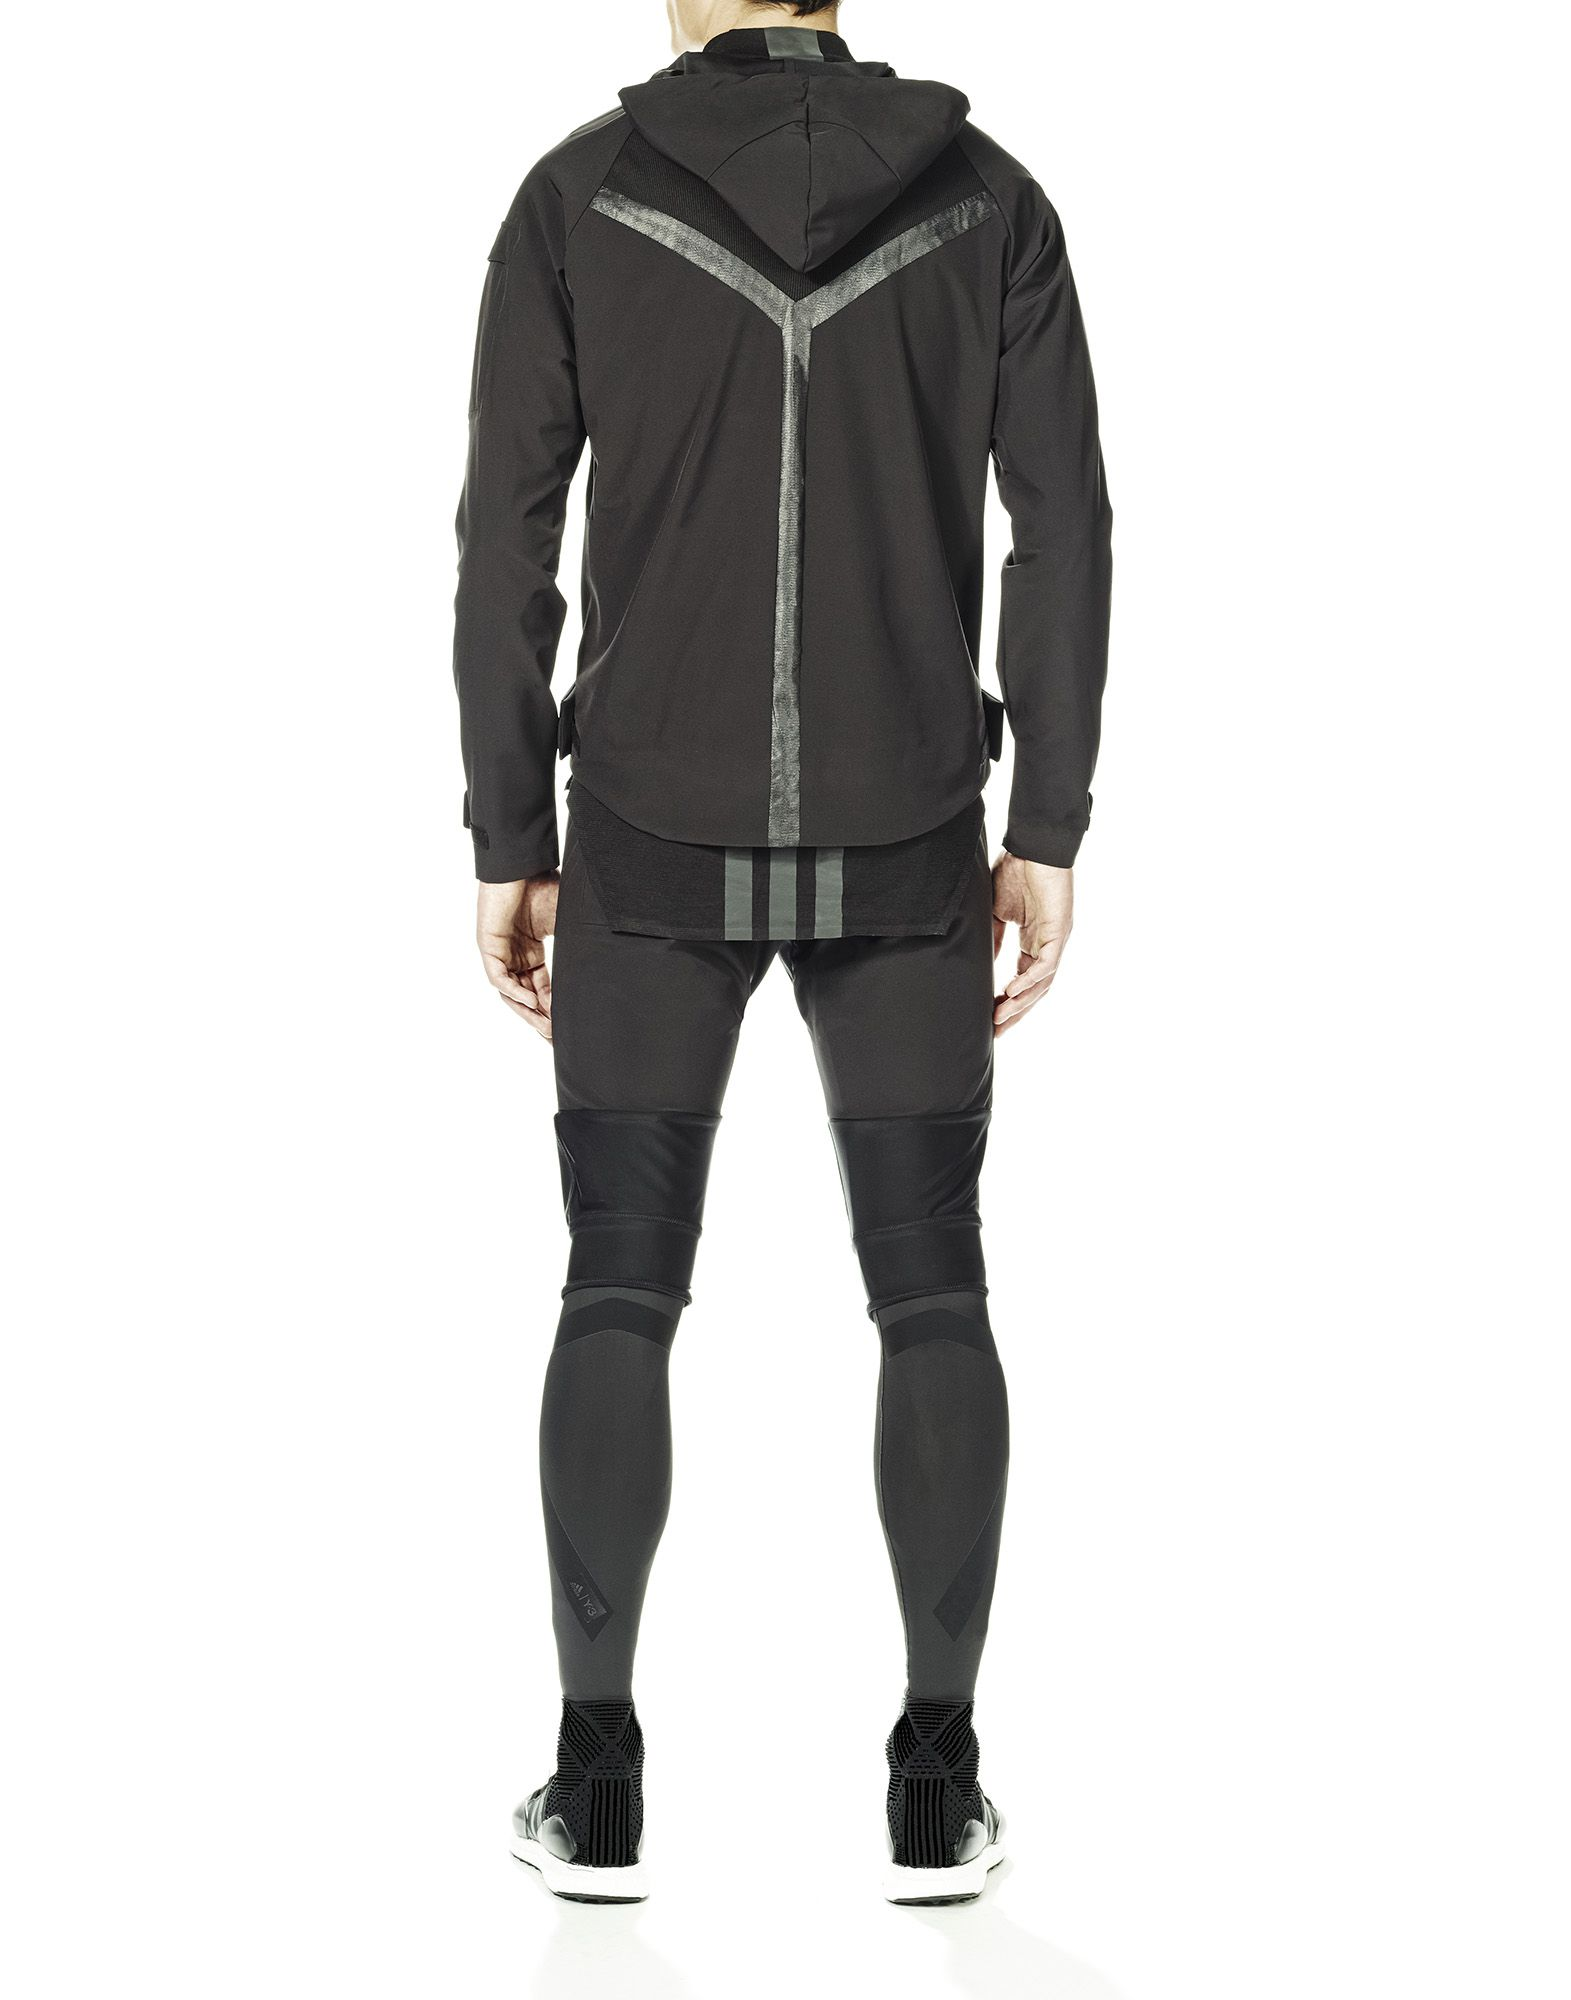 Y 3 SPORT 3 LAYER WATERPROOF JACKET, Jackets for Men | Y-3.com